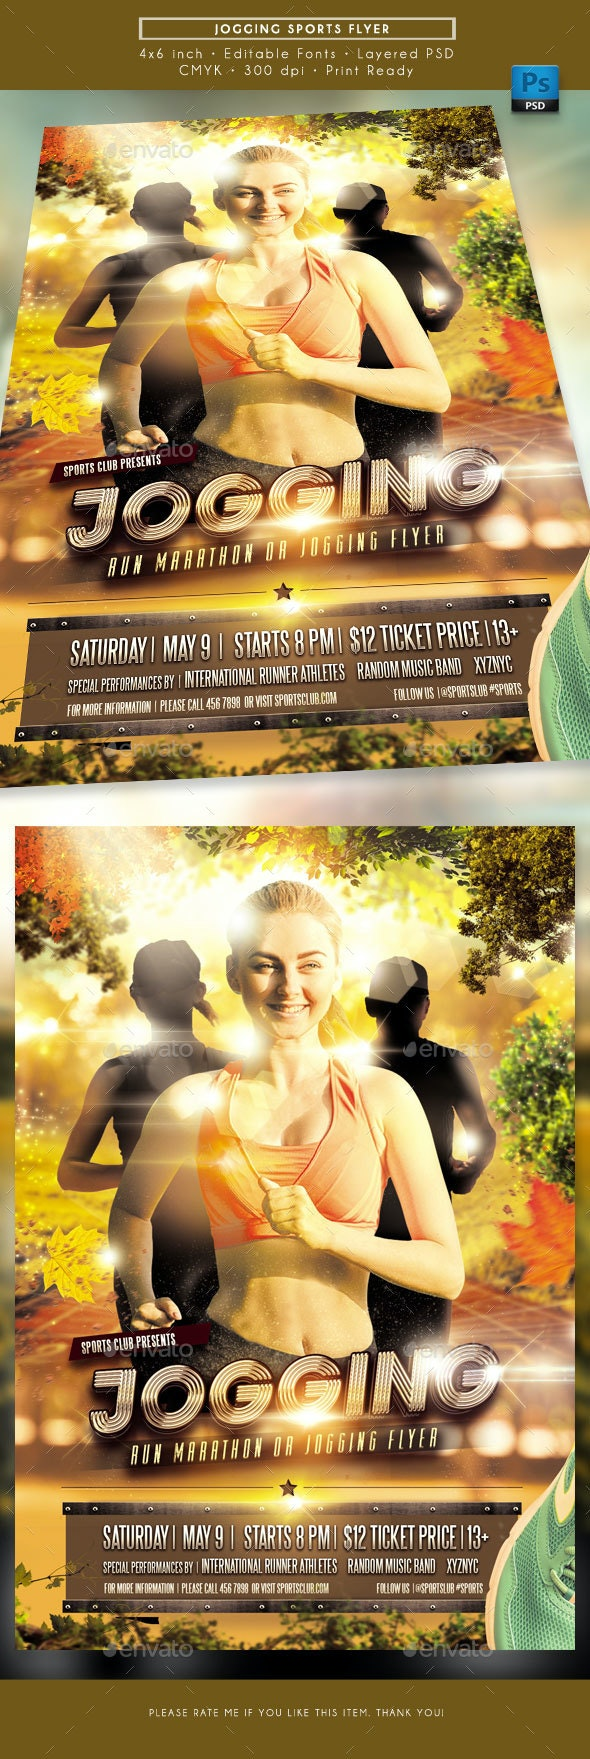 Jogging Sports Flyer - Sports Events